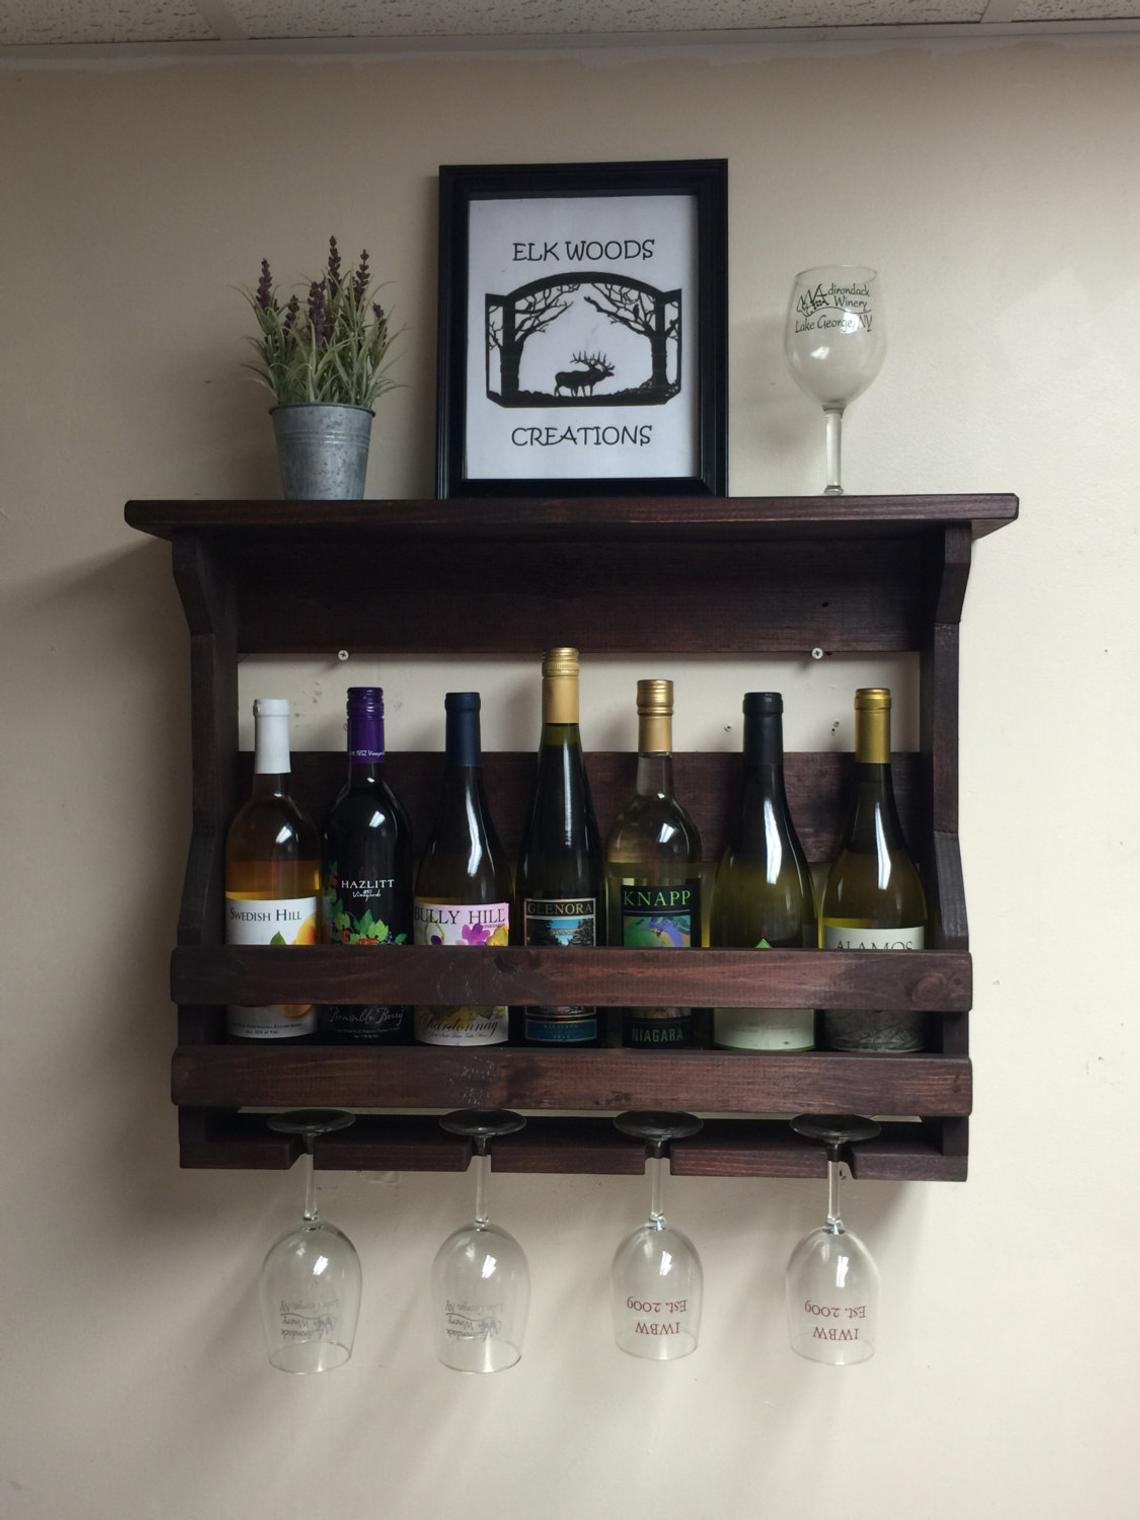 Wandweinregal Wooden Wine Rack Wall Mounted Wine Rack Handmade Rustic Home